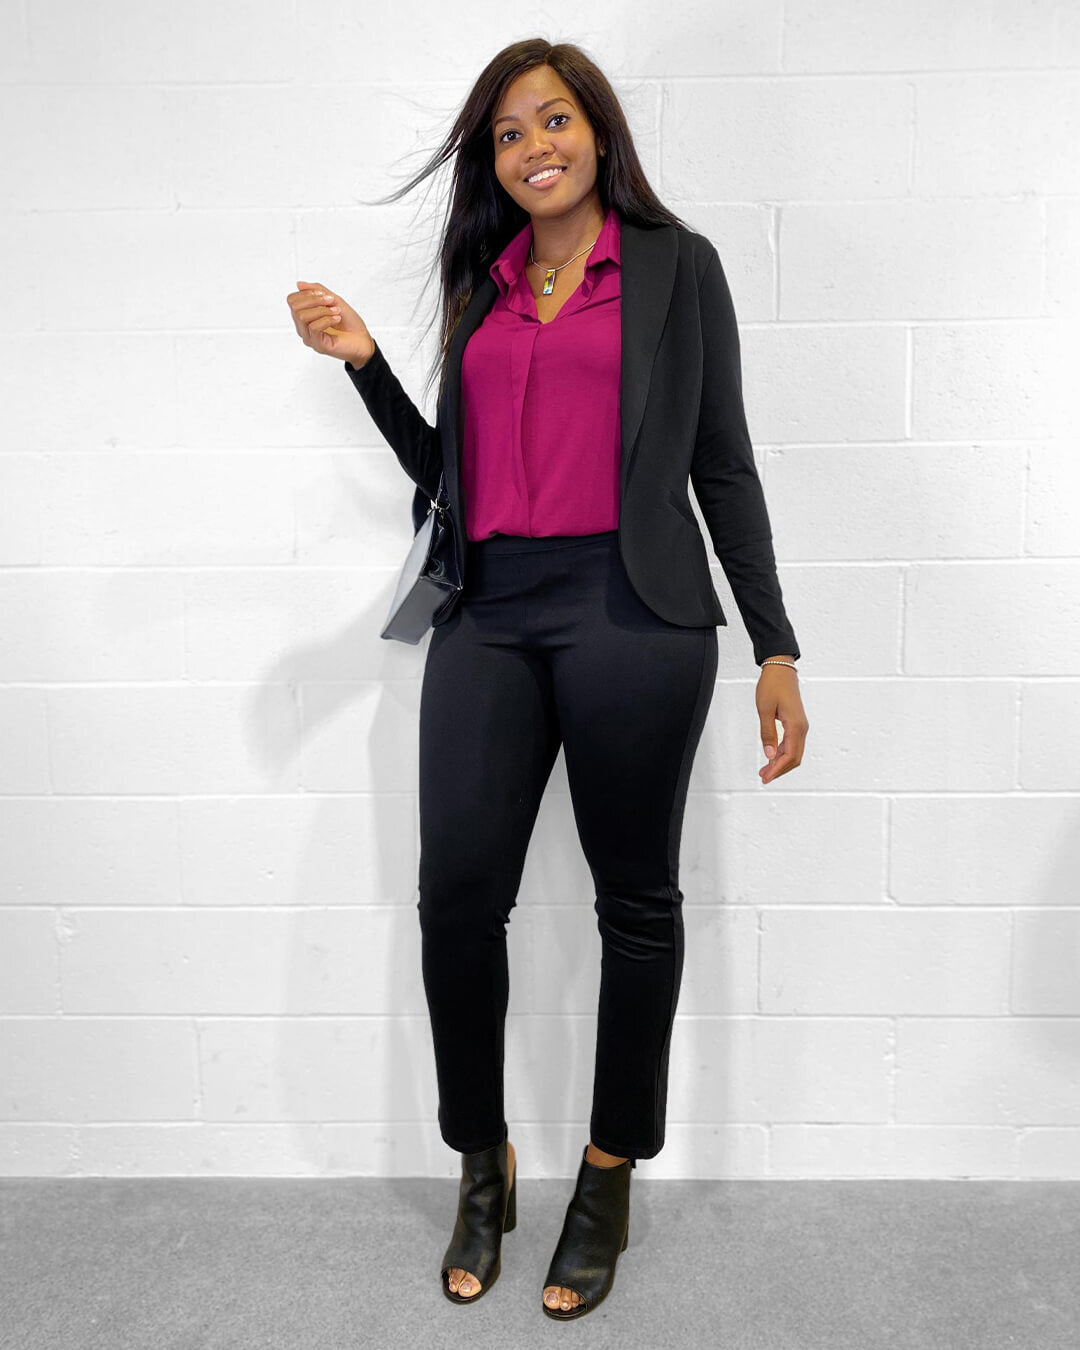 The Avery pant with a matching black blazer